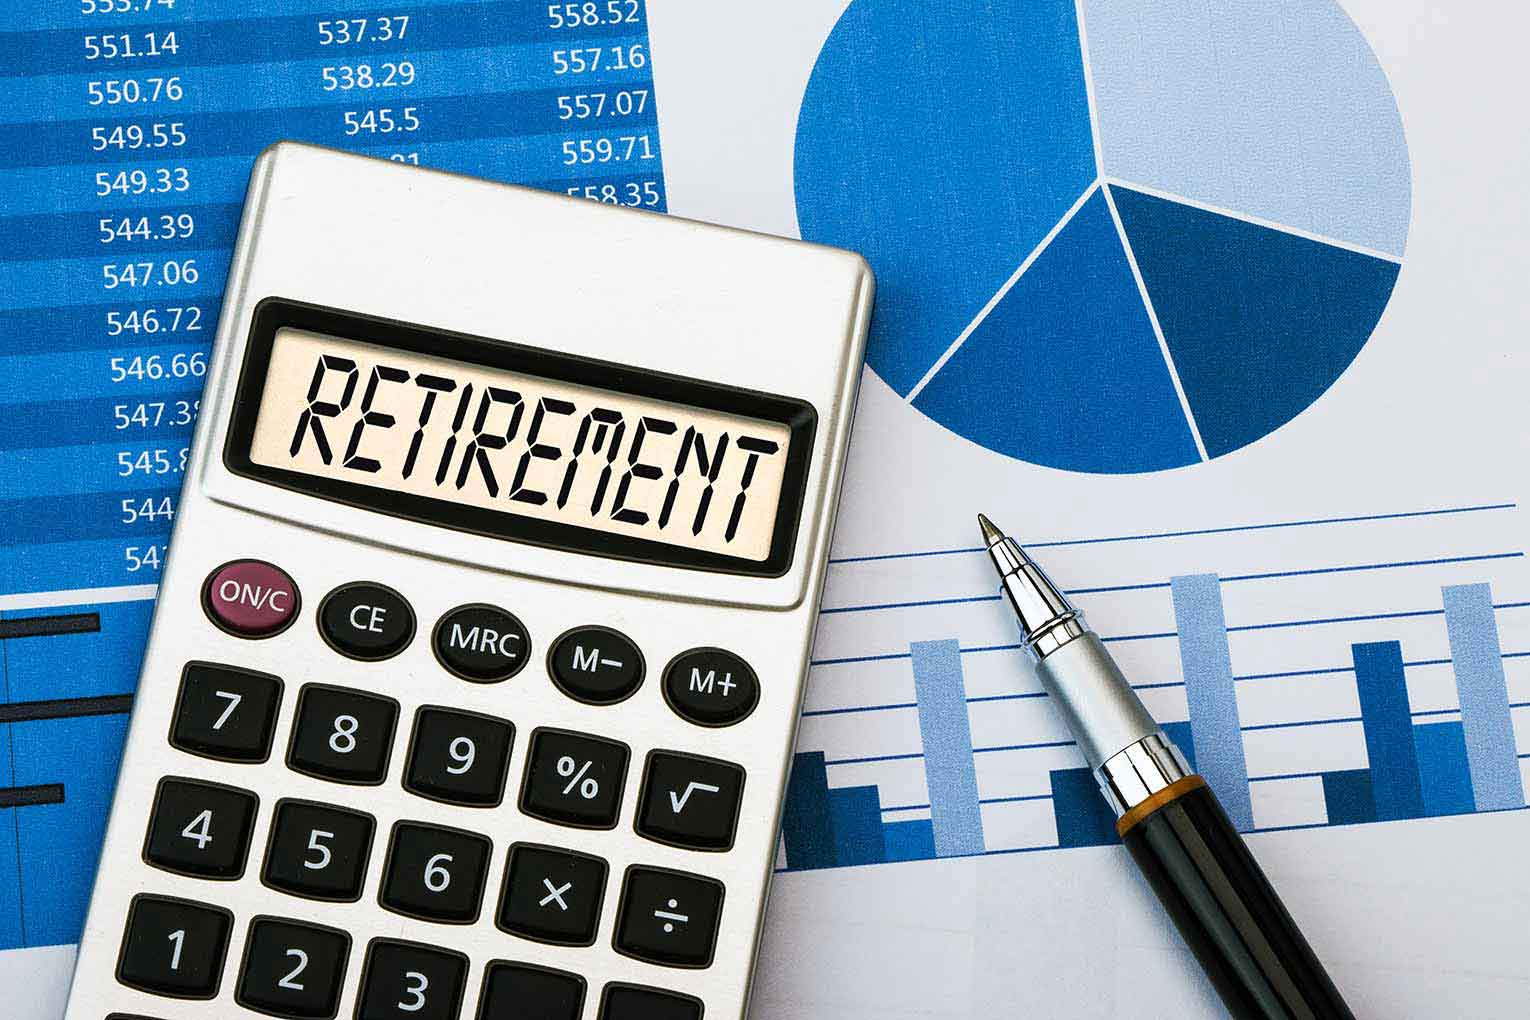 Retirement incomes for 2018 hit record high of £19900 - Prudential